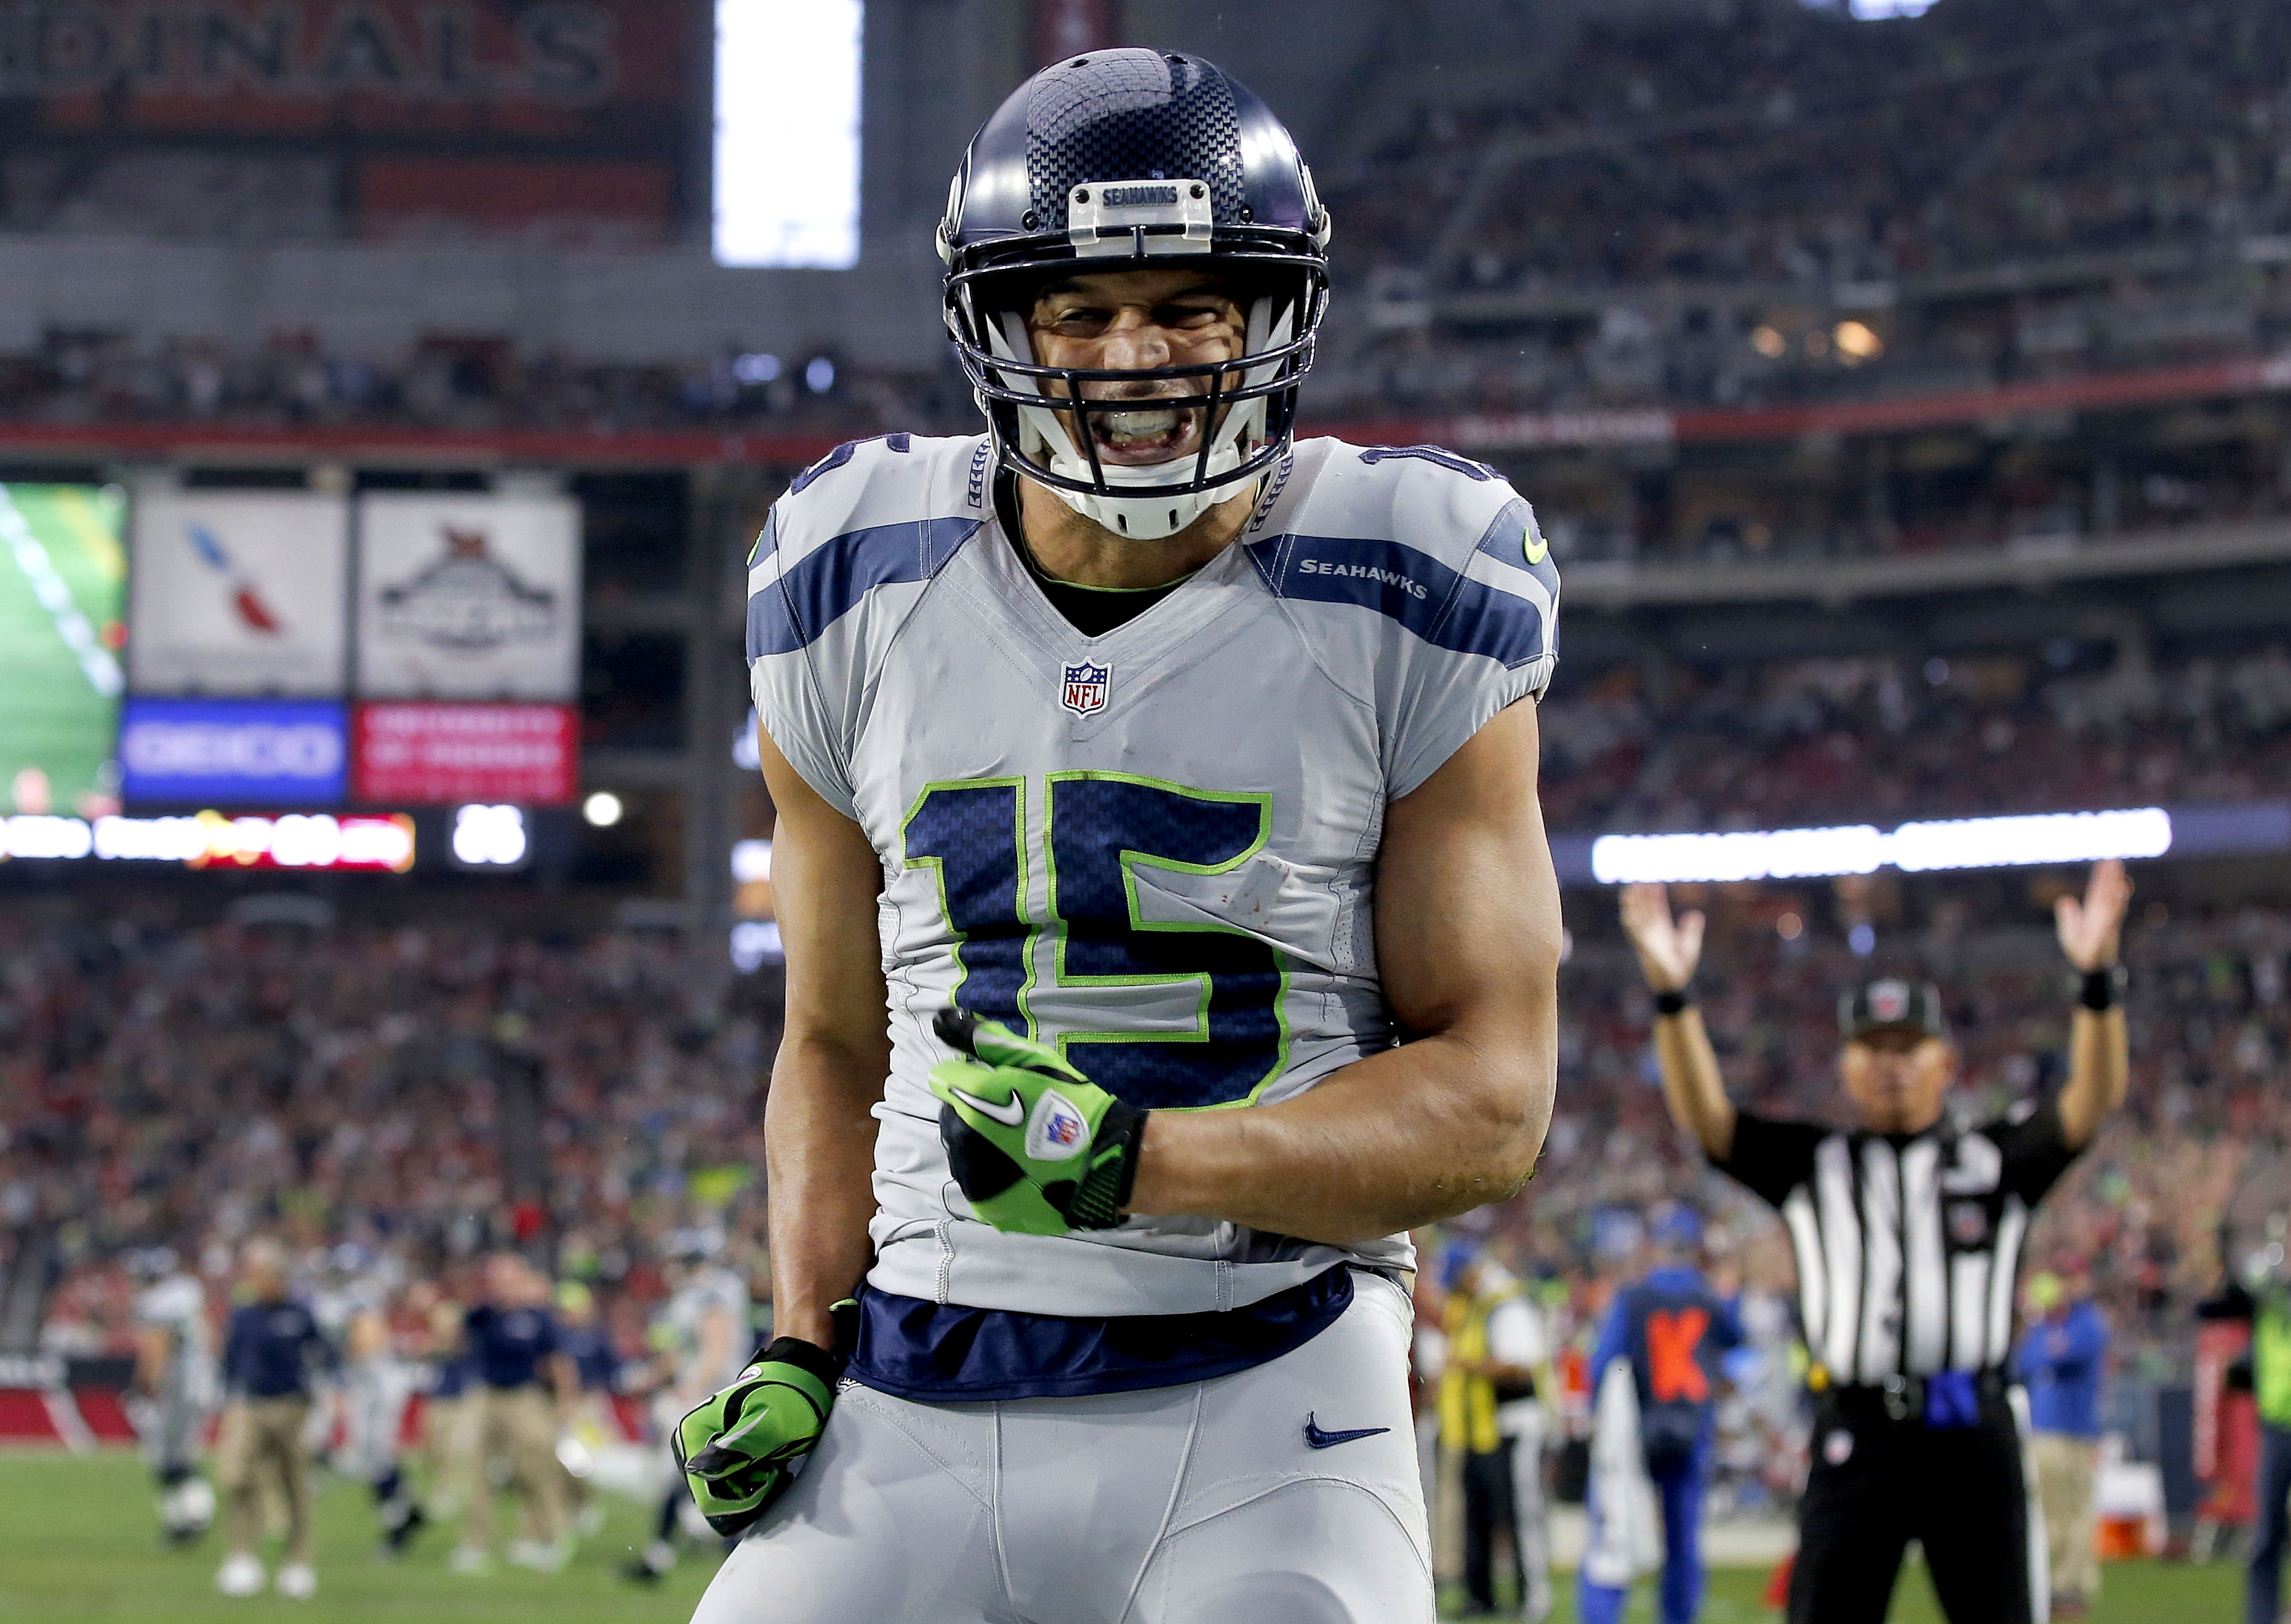 Seattle Seahawks wide receiver Jermaine Kearse (15) celebrates his touchdown against the Arizona Cardinals during the first half of an NFL football game, Sunday, Jan. 3, 2016, in Glendale, Ariz. (AP Photo/Ross D. Franklin)